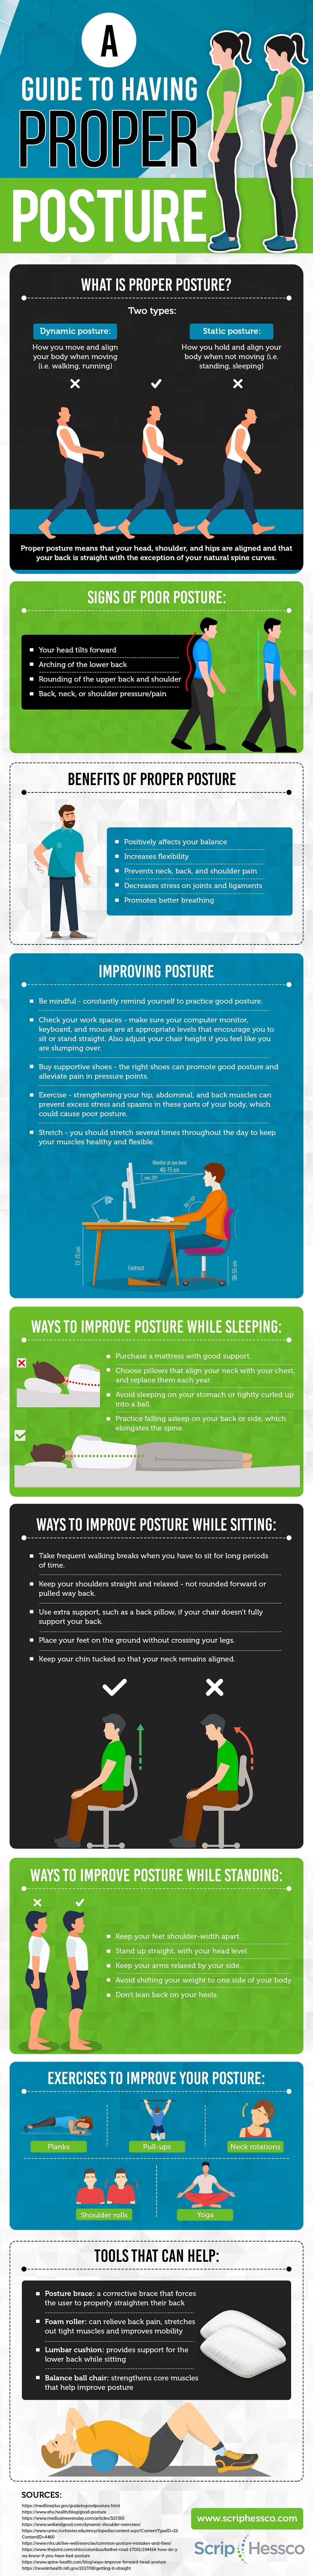 a-guide-to-having-proper-posture-infographic